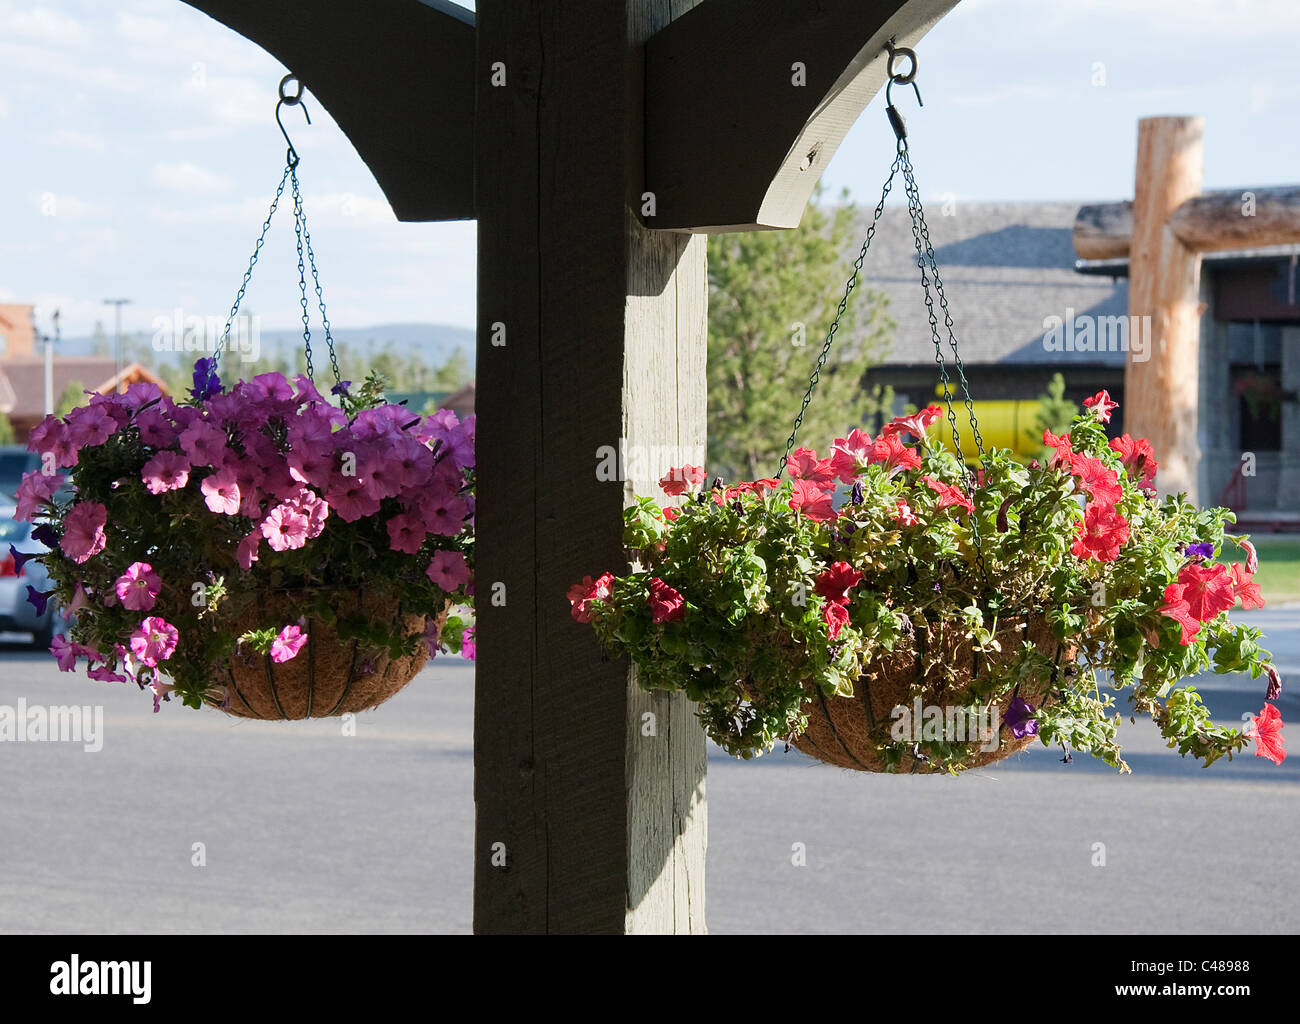 Baskets of flowers hanging from a rough hewn lumber beam in front of gift shops in West Yellowstone, Montana, USA. - Stock Image